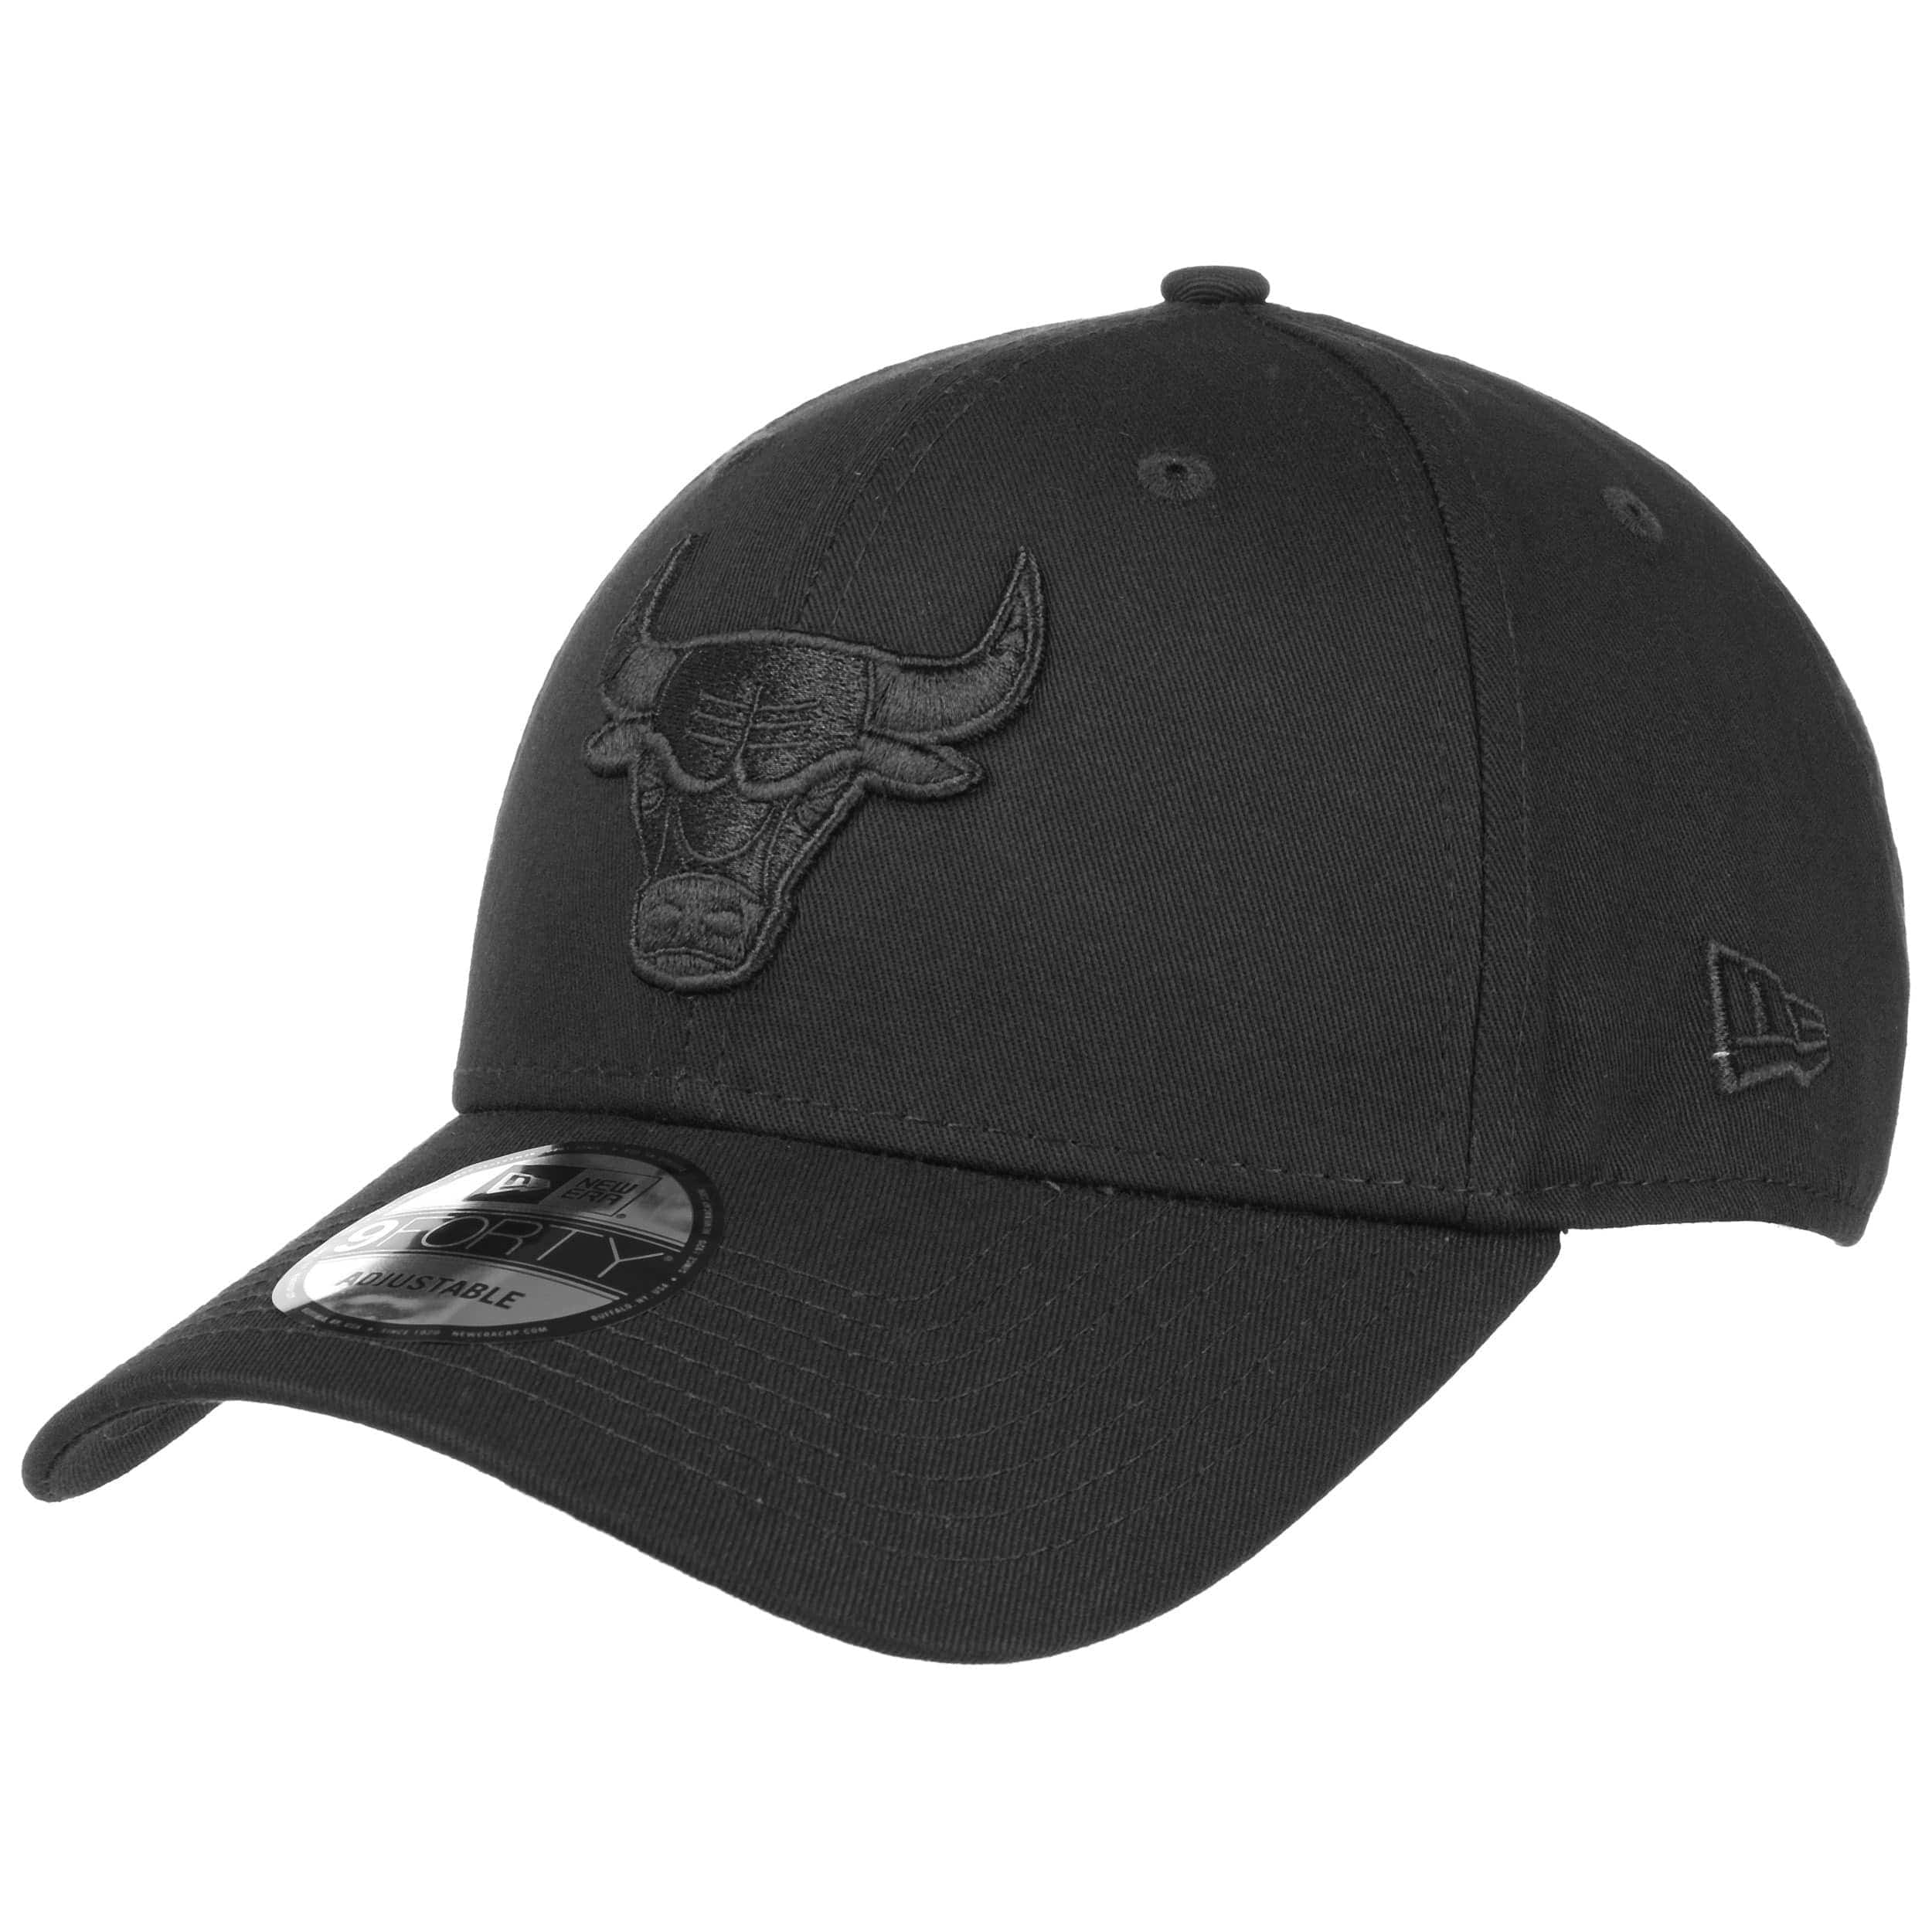 gorra 9forty bob chicago bulls by new era gorras. Black Bedroom Furniture Sets. Home Design Ideas